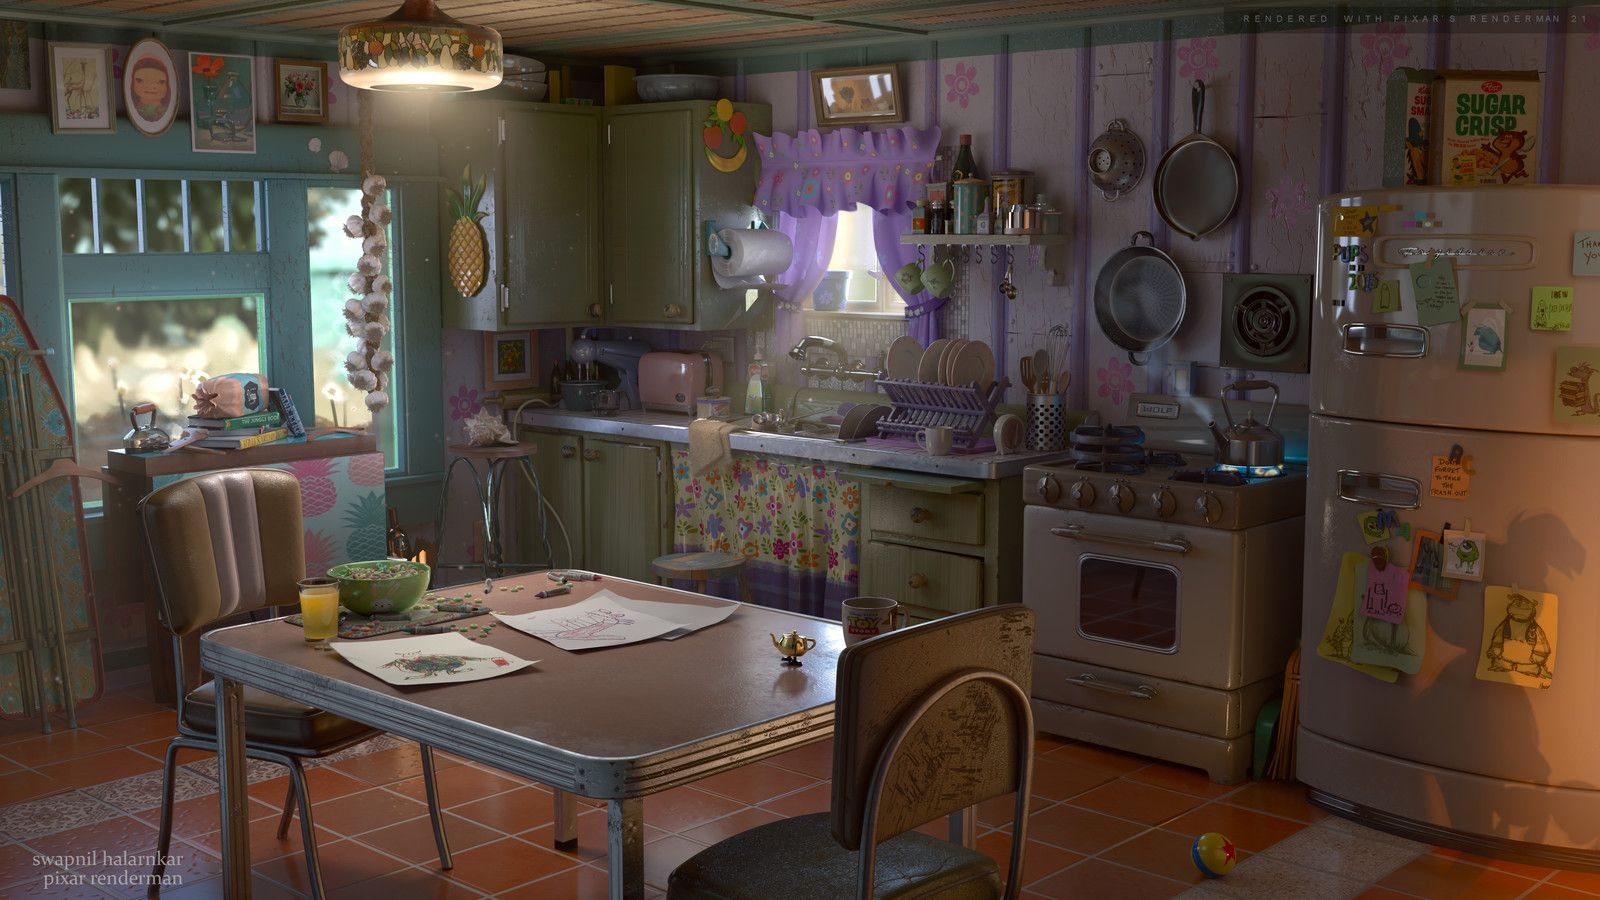 Pixar Lighting Challenge Swapnil Halarnkar On Artstation At Https